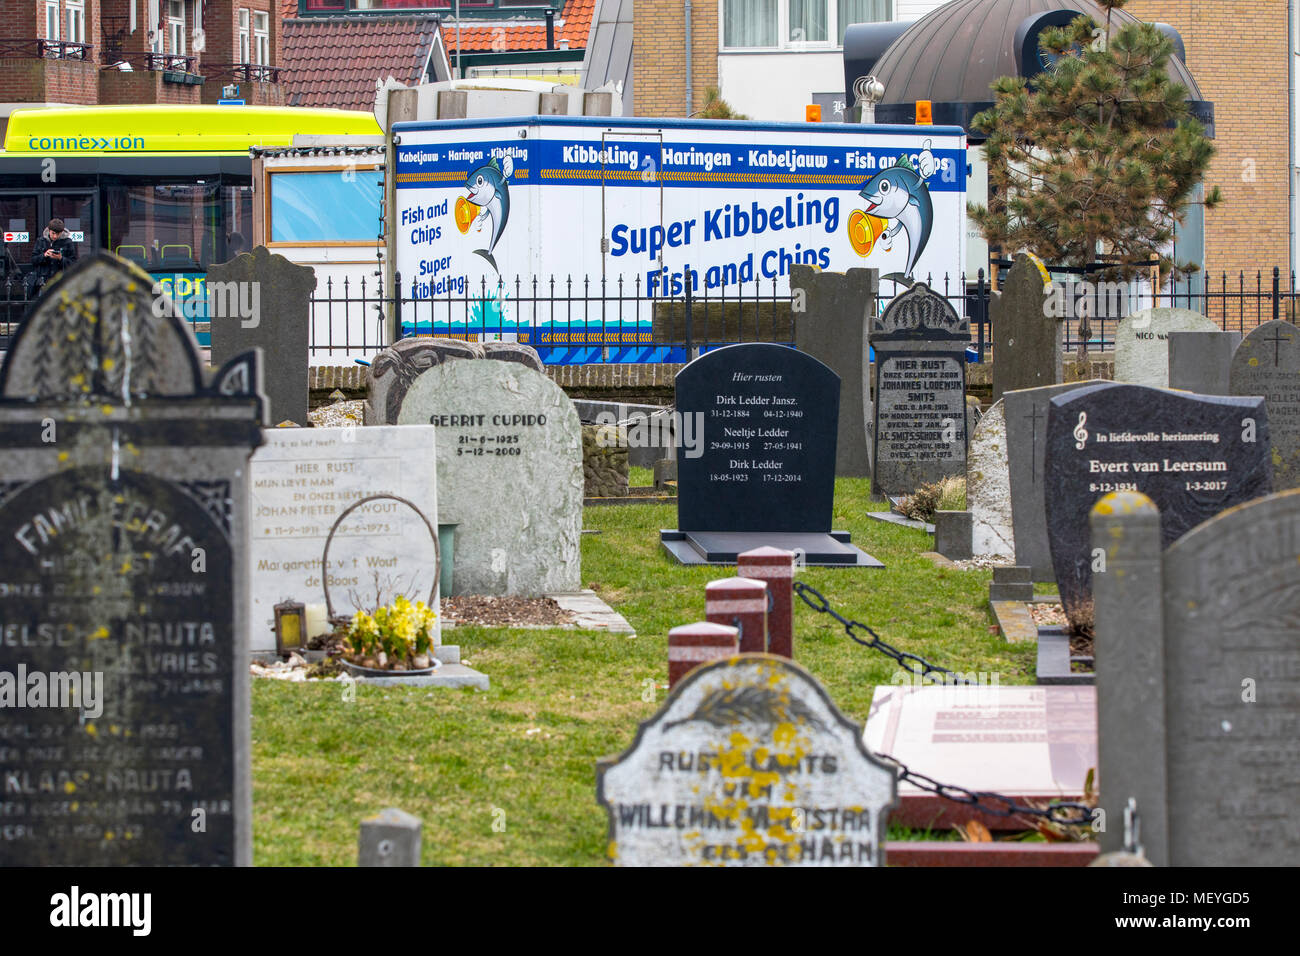 Fast food, Snack stall, fish stall, kibbeling, directly at the cemetery in the coastal village, Wijk aan Zee, in North Holland, the Netherlands, Julia - Stock Image